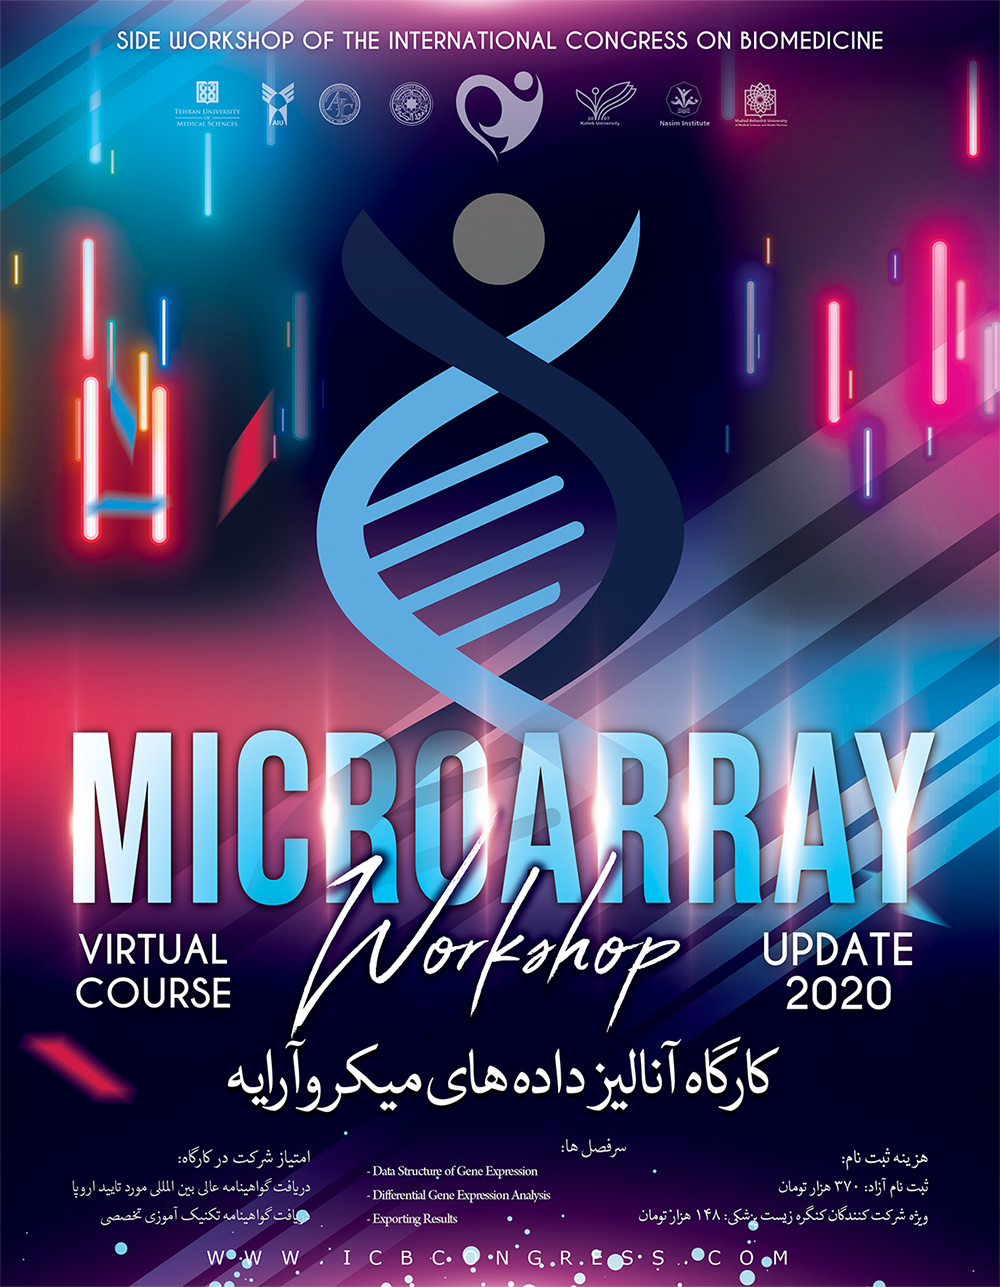 Microarray Analysis in R